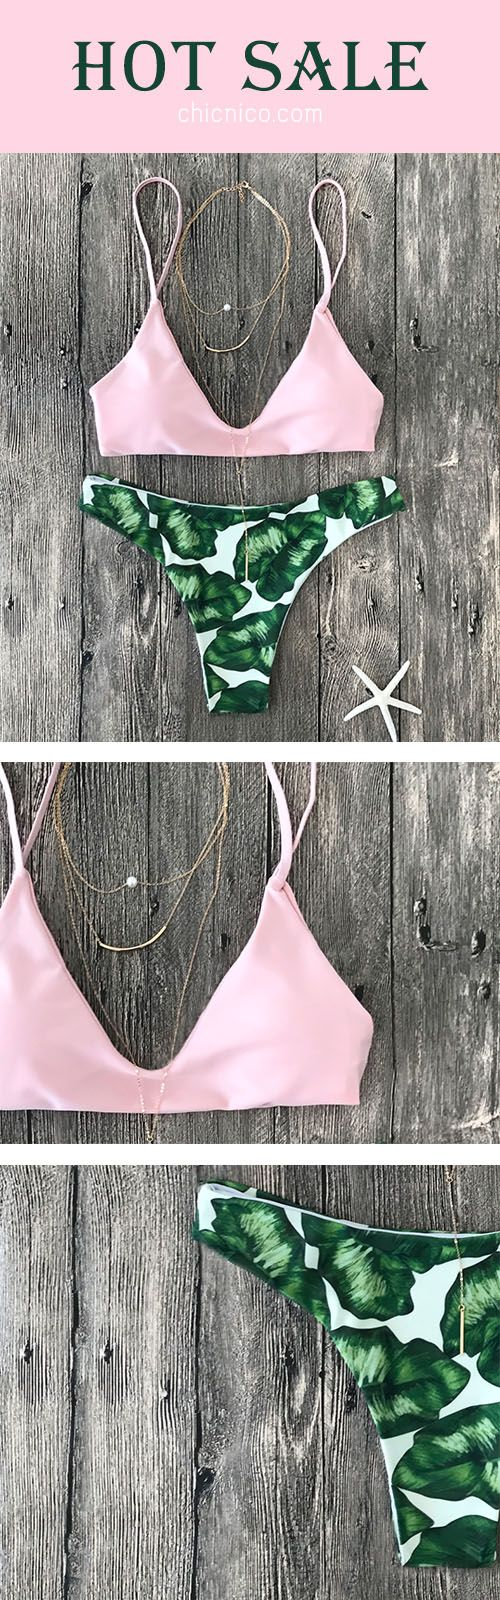 Hot sale & Free Shipping! Its the perfect go to bathing suit for style and comfort! ! Pink Up Leaf Print Halter Bikini Set